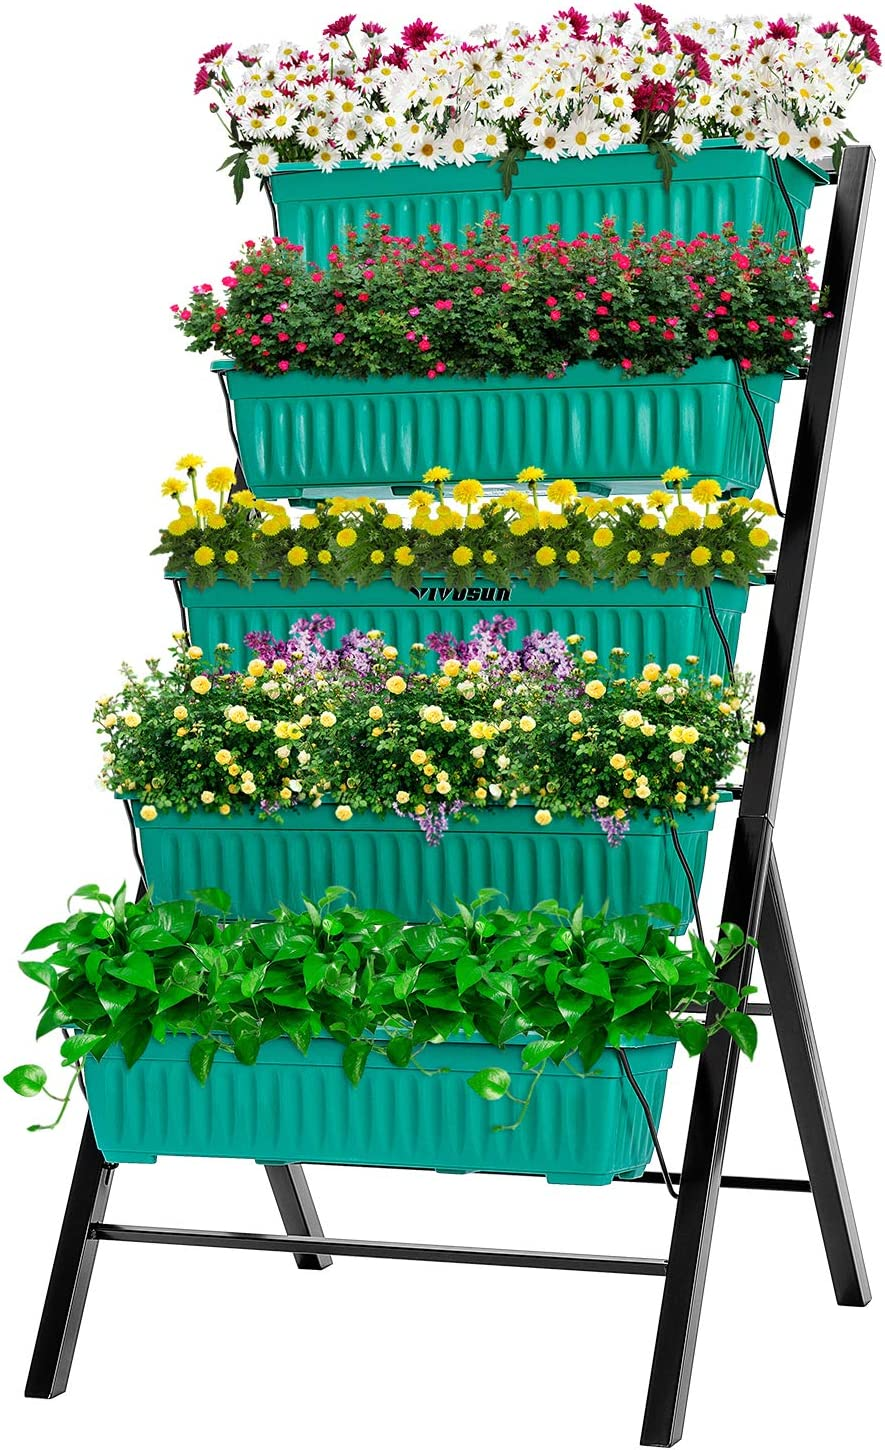 VIVOSUN 4FT Vertical Raised Garden Bed 5 Tier Planter Box Perfect to Grow Flower, Vegetables, Herbs, for Outdoor and Indoor Gardening